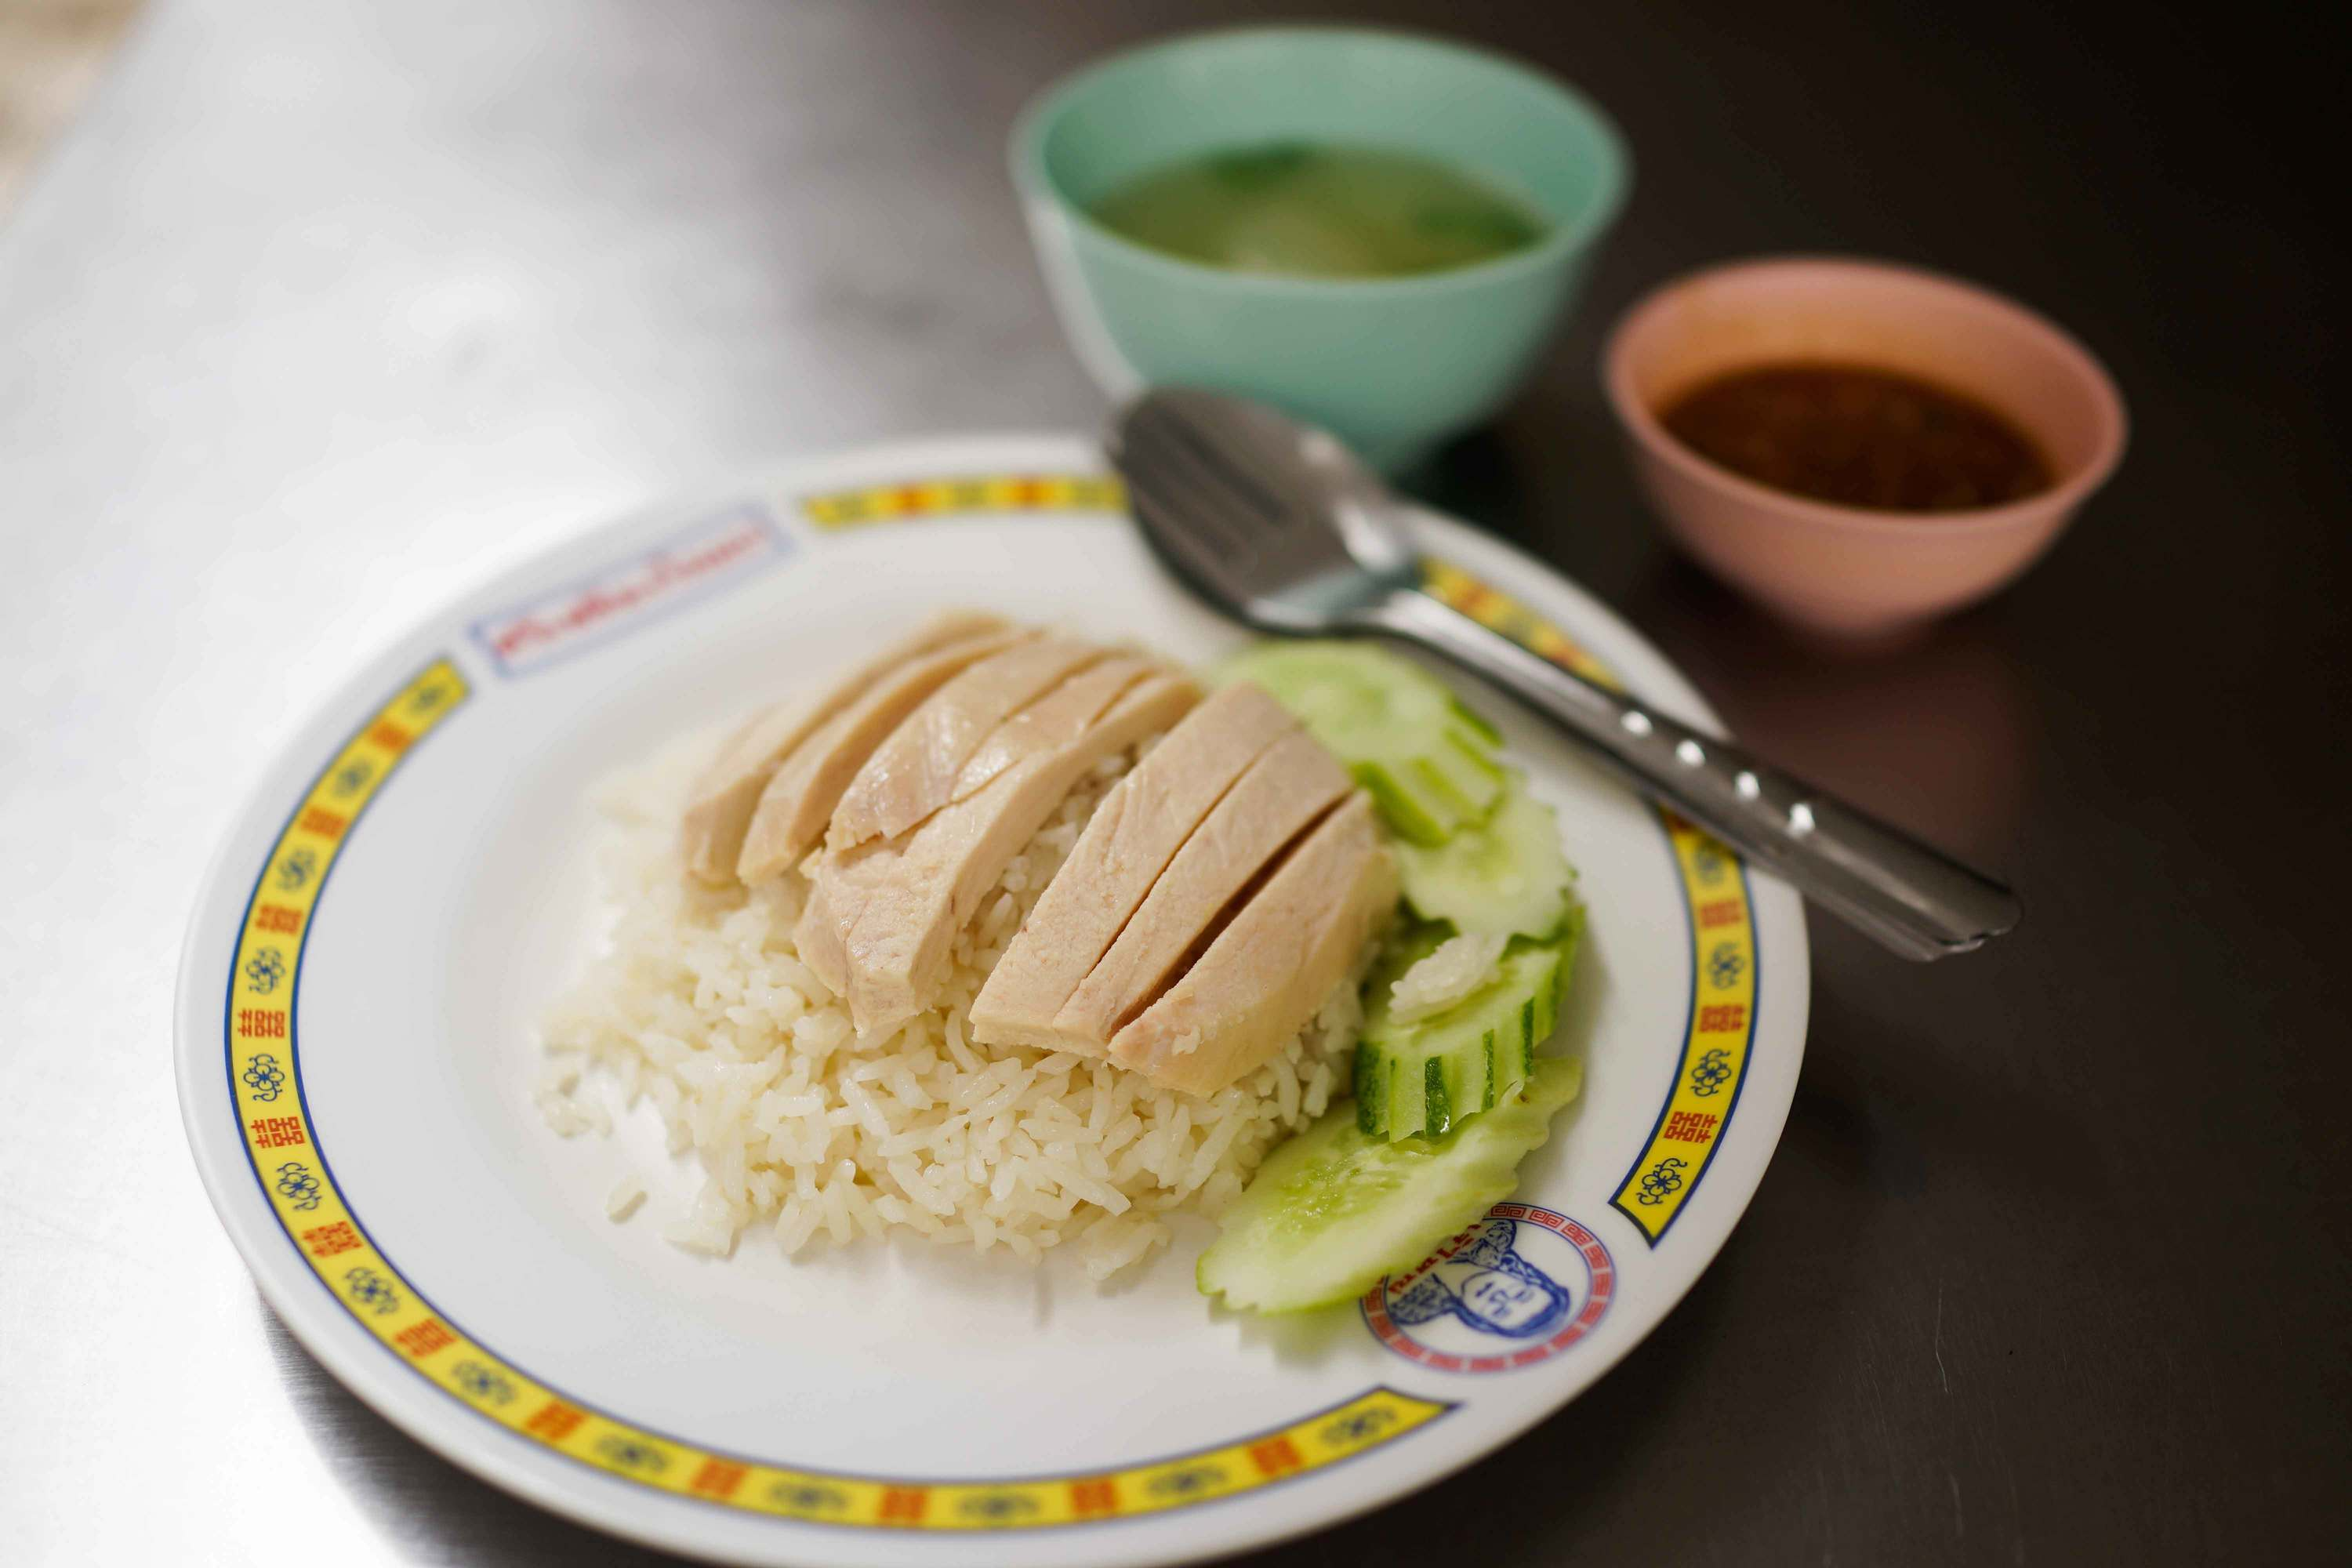 Sri Leung Phochana Chicken Rice